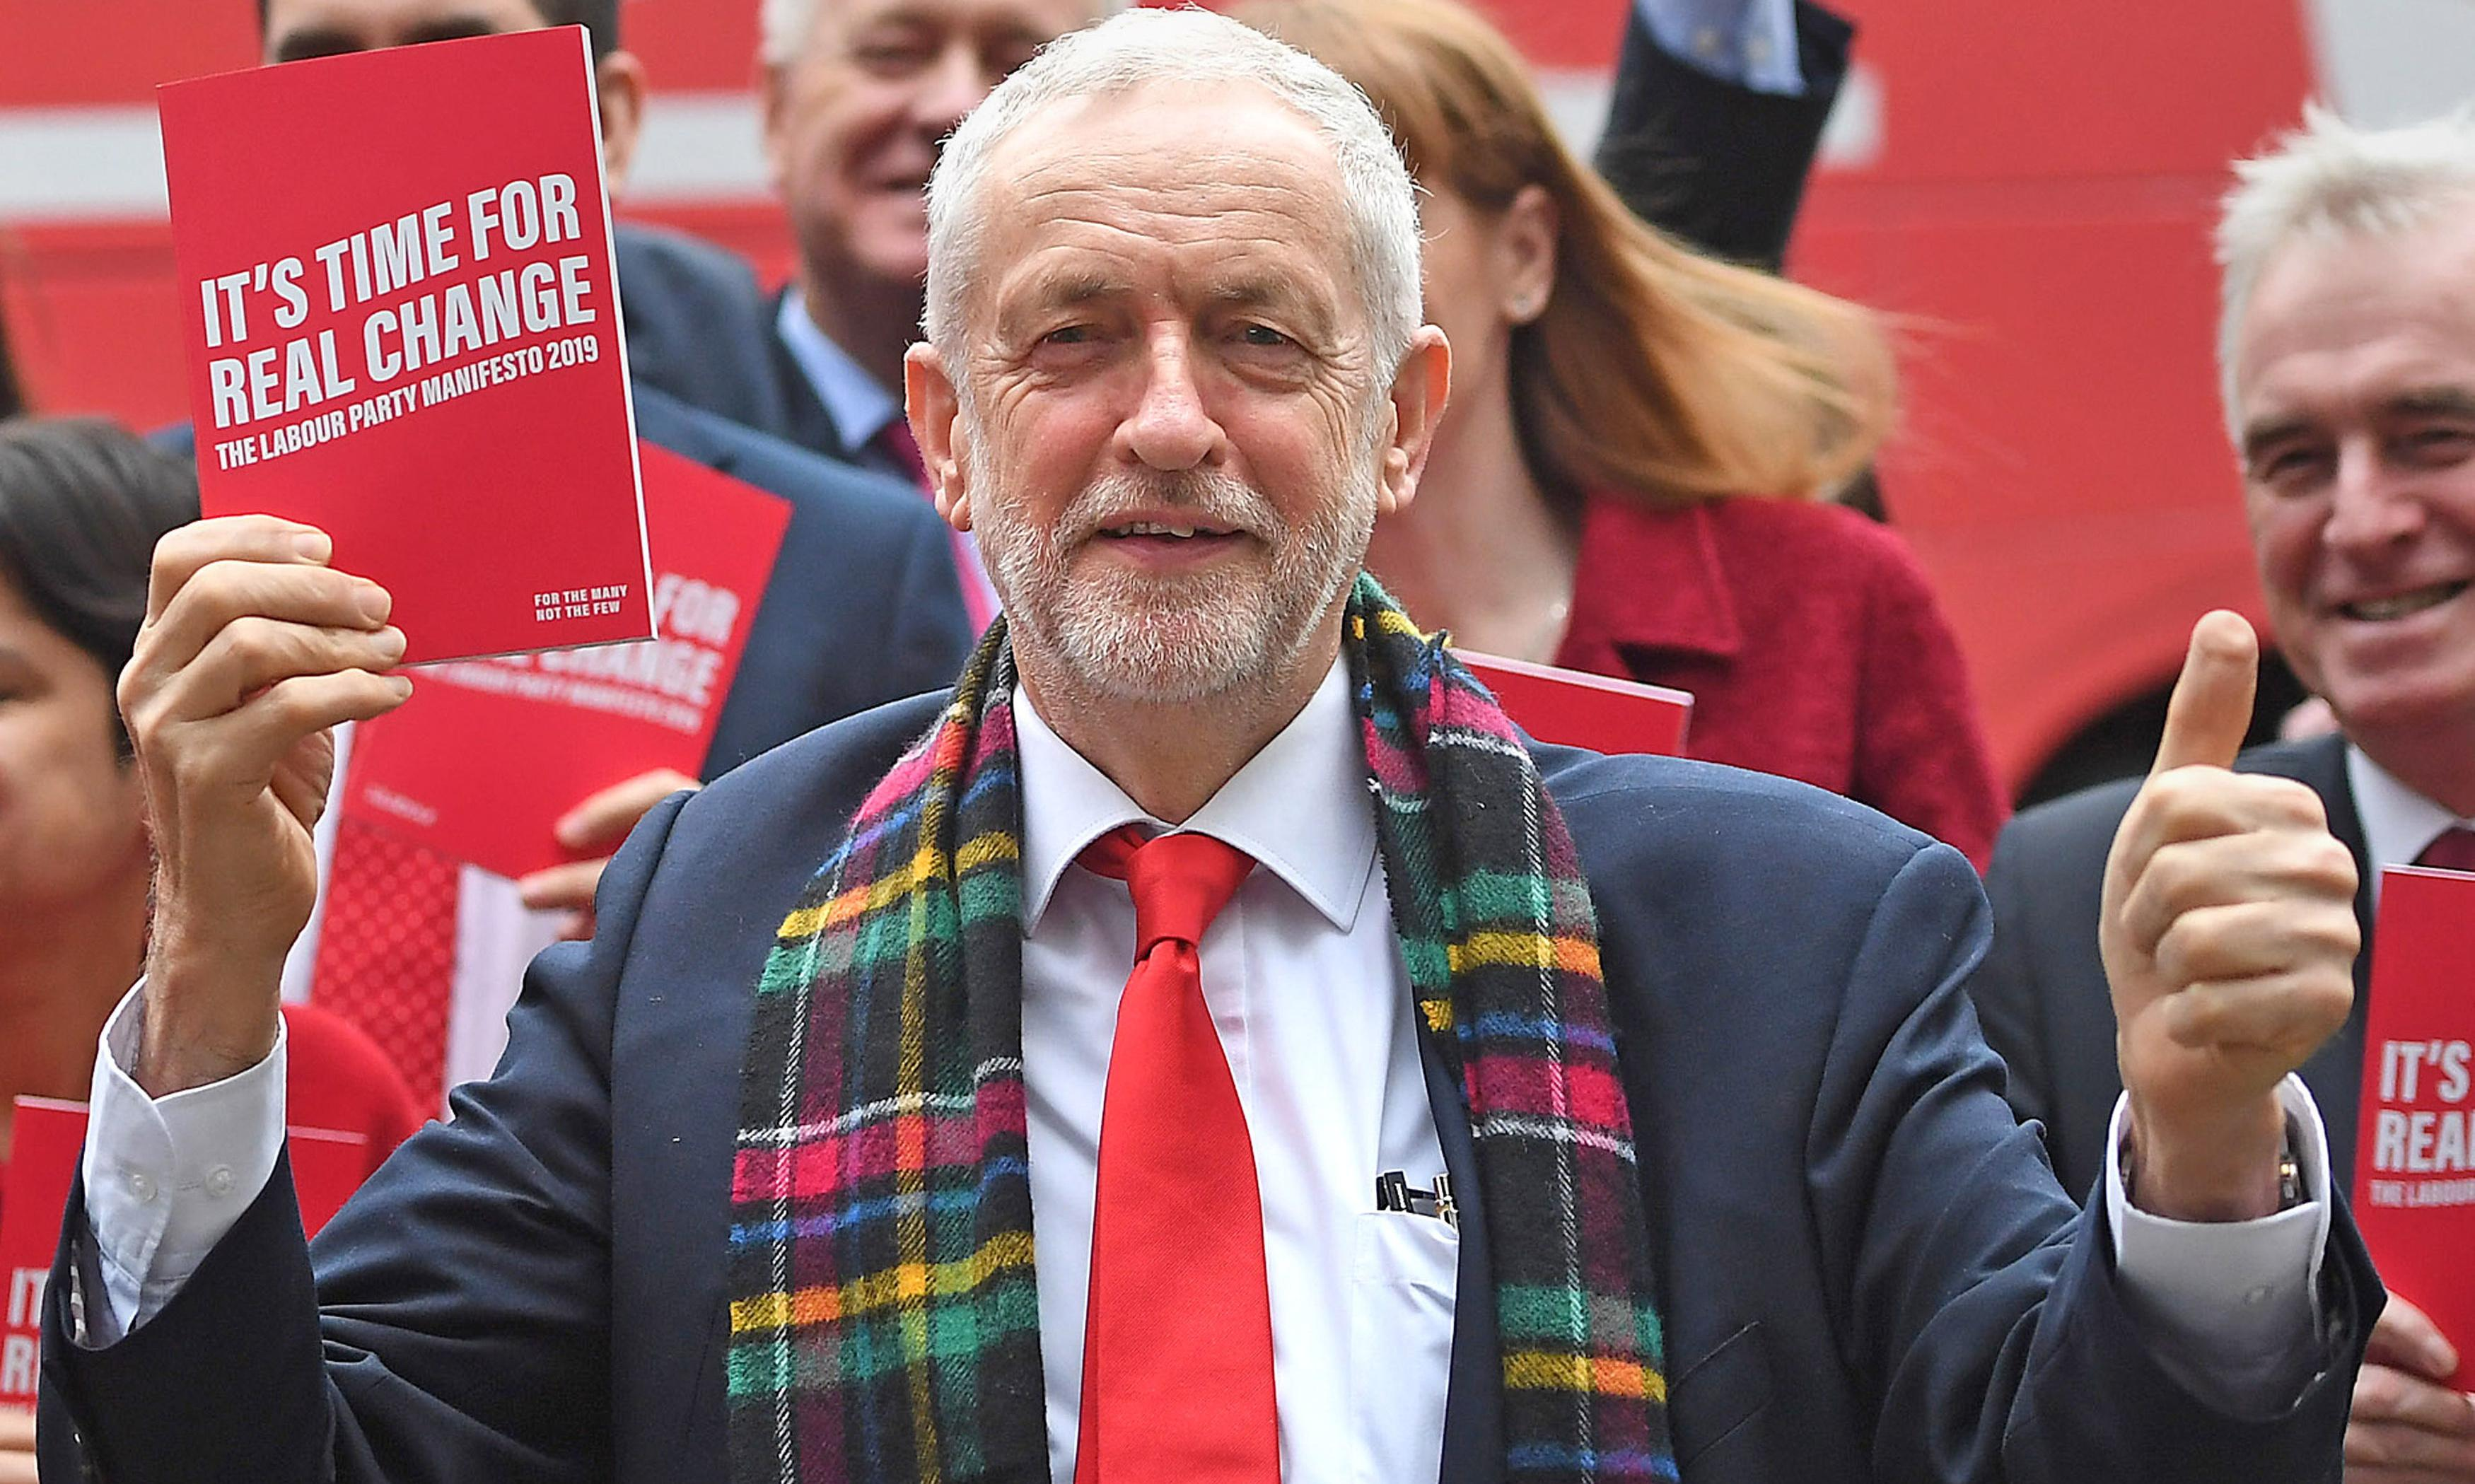 Zero chance of a Labour majority? Maybe. But Corbyn doesn't need one